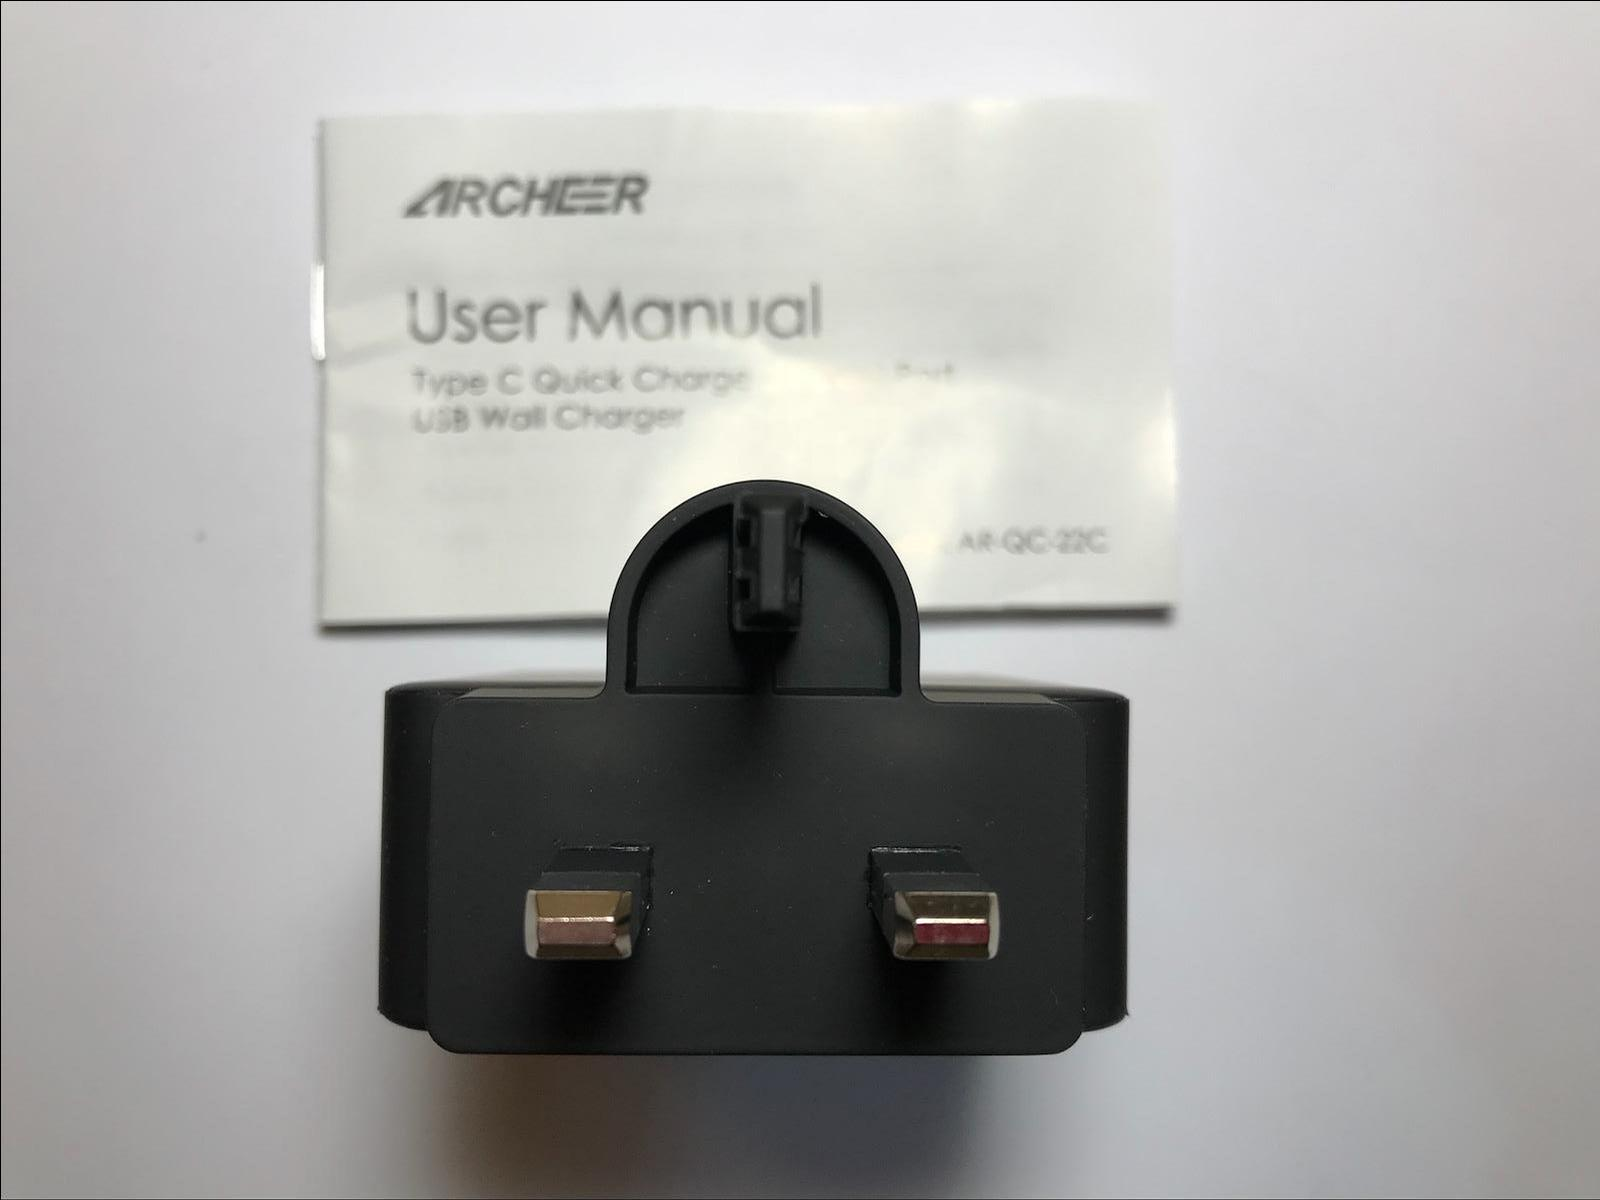 ARCHEER AR-QC-22C Qualcomm 3 0 Quick Charge USB USB-C UK